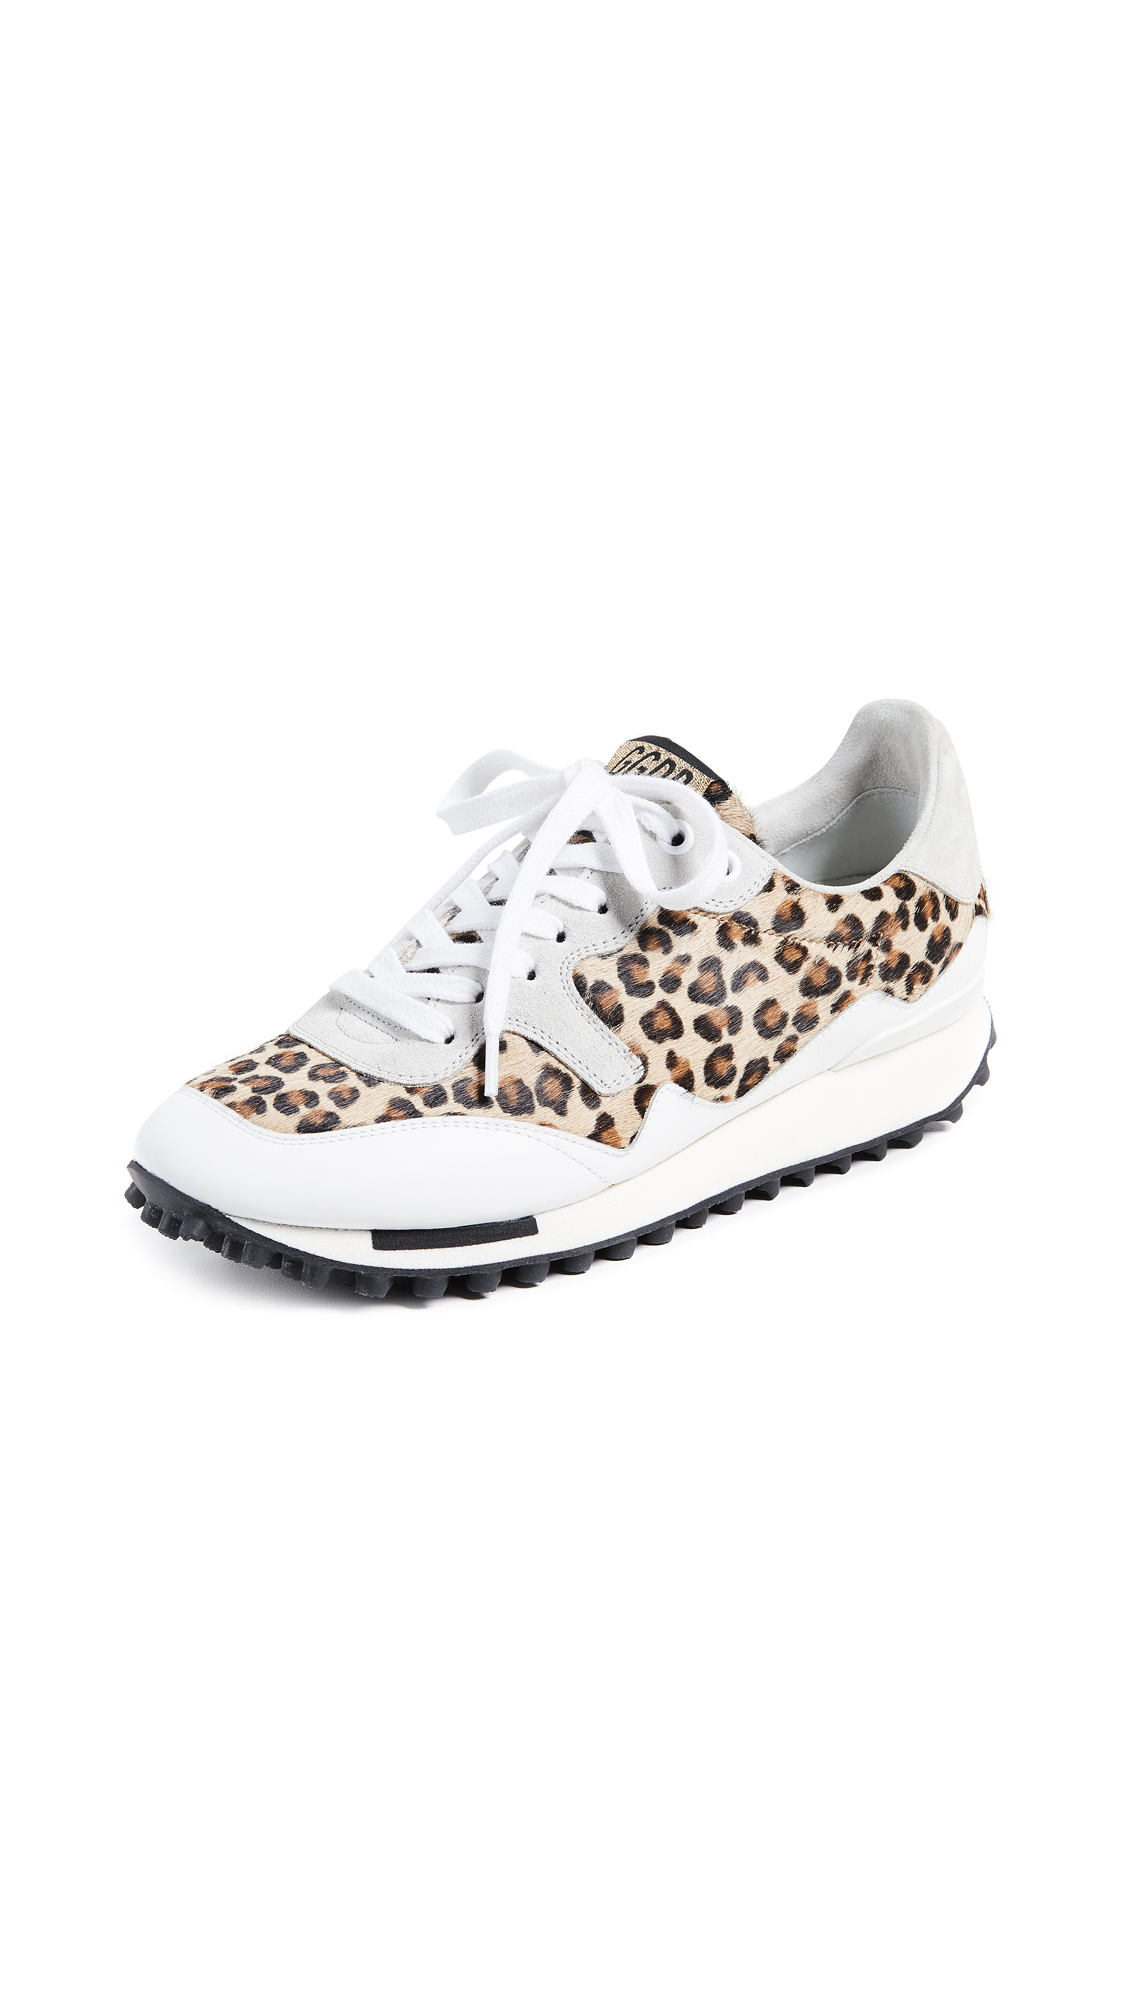 Golden Goose Starland Sneakers - Leopard/Ice